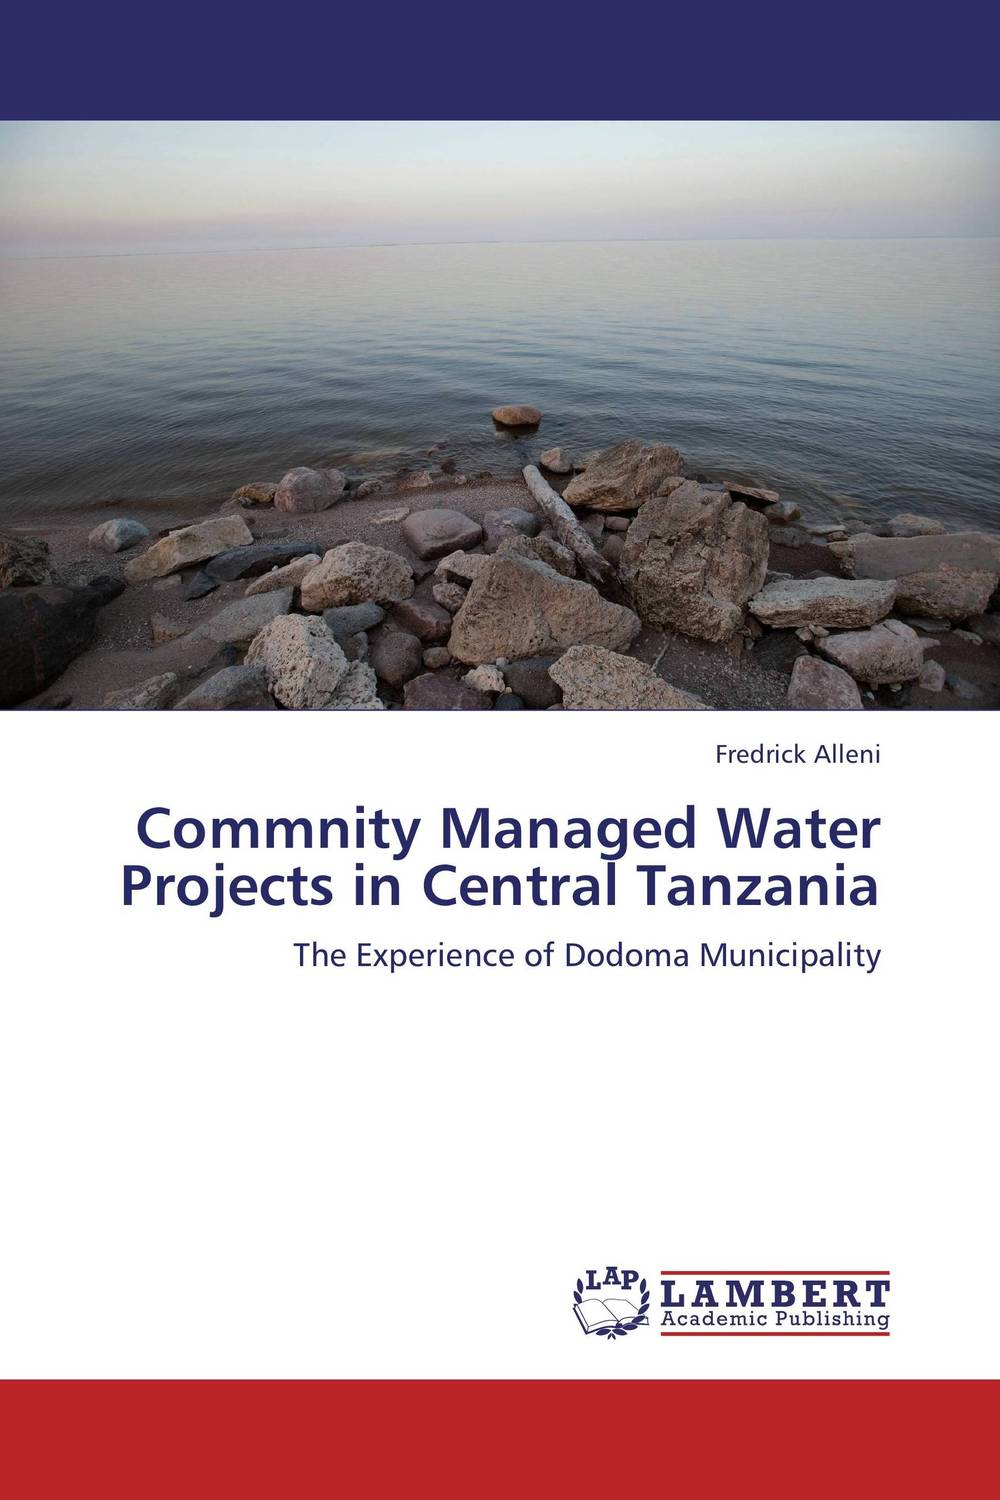 Commnity Managed Water Projects in Central Tanzania managing projects made simple